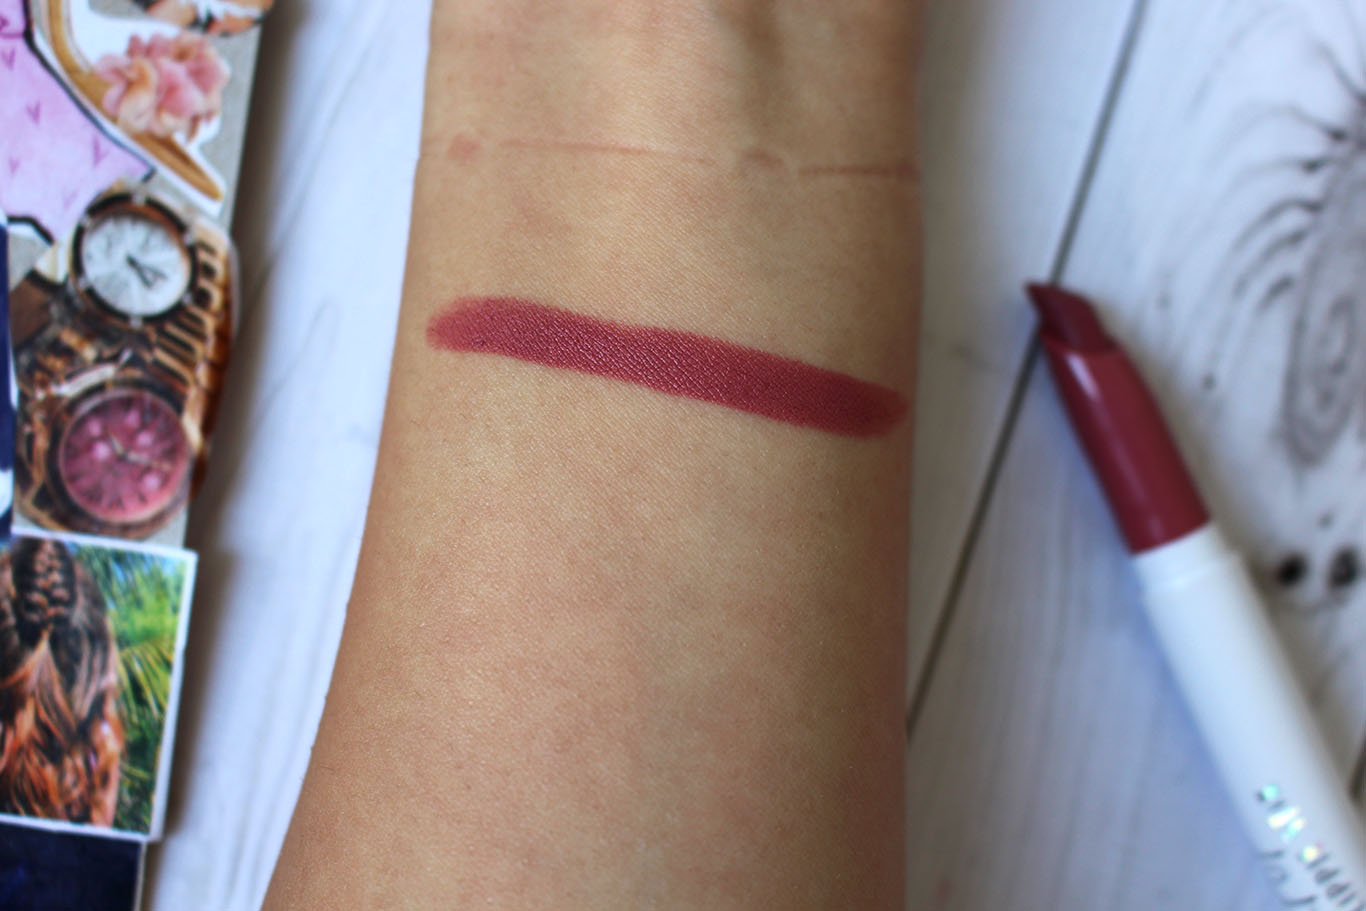 Colourpop Lippie Stix Lumiere